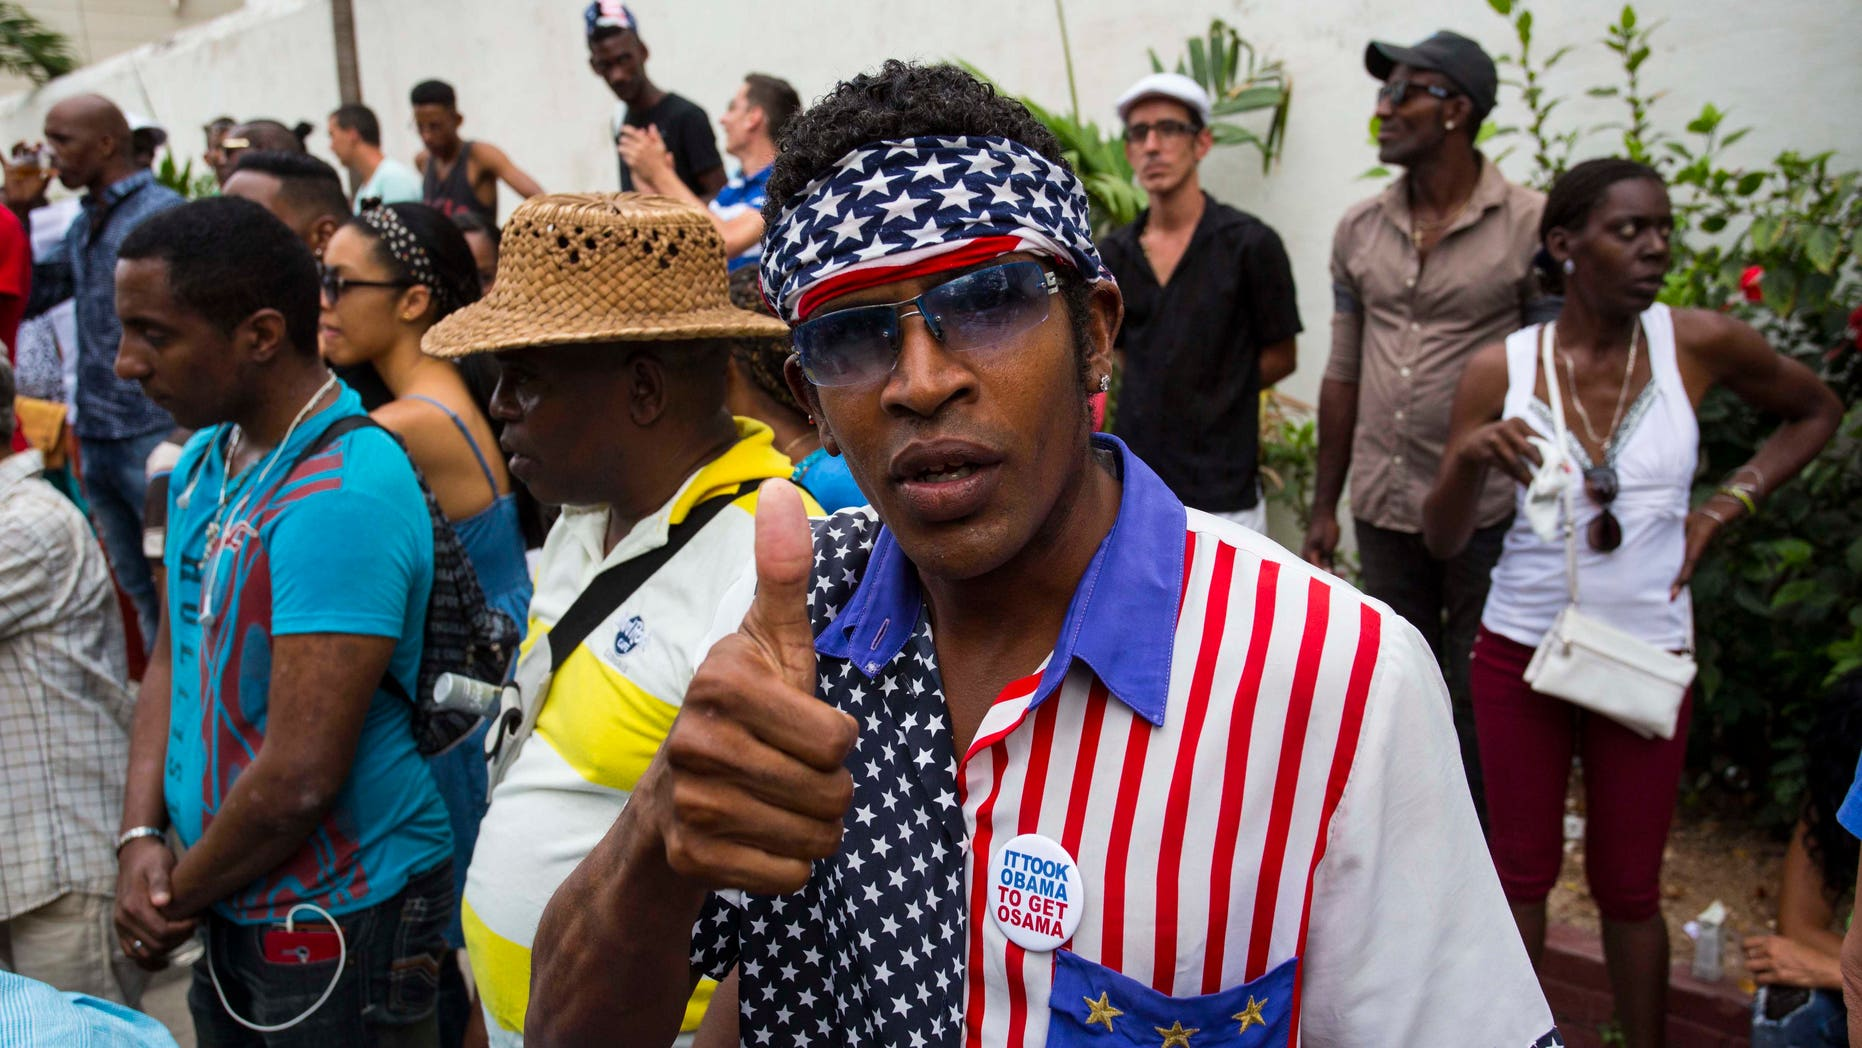 A man wearing a shirt and head scarf with a Stars and Stripes motif flashes a thumbs up at a weekly rumba dance gathering in Havana, Cuba, Saturday, March 19, 2016. President Barack Obama will travel to the communist island March 20. During his three-day trip, the first to the country by a sitting president in nearly 90 years he will meet with President Raul Castro at the Palace of the Revolution and attend a baseball exhibition game. (AP Photo/Desmond Boylan)